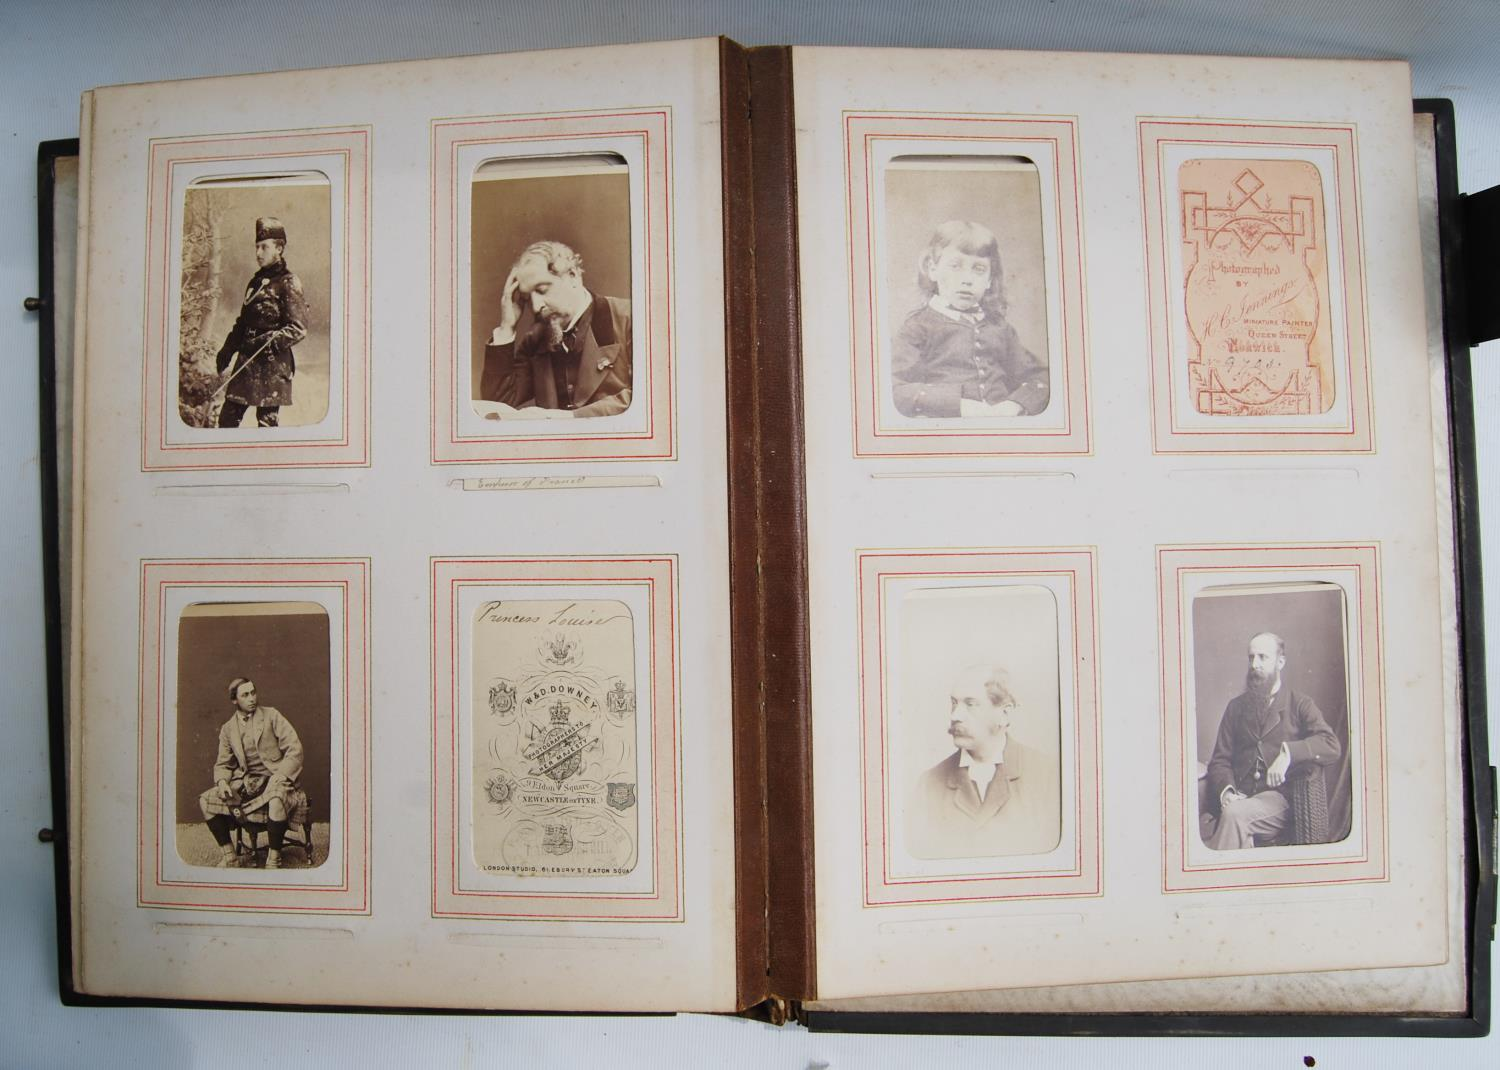 Victorian photograph album belong to Harden Burnley, signed 1870, comprising of royalty, officers - Image 6 of 10